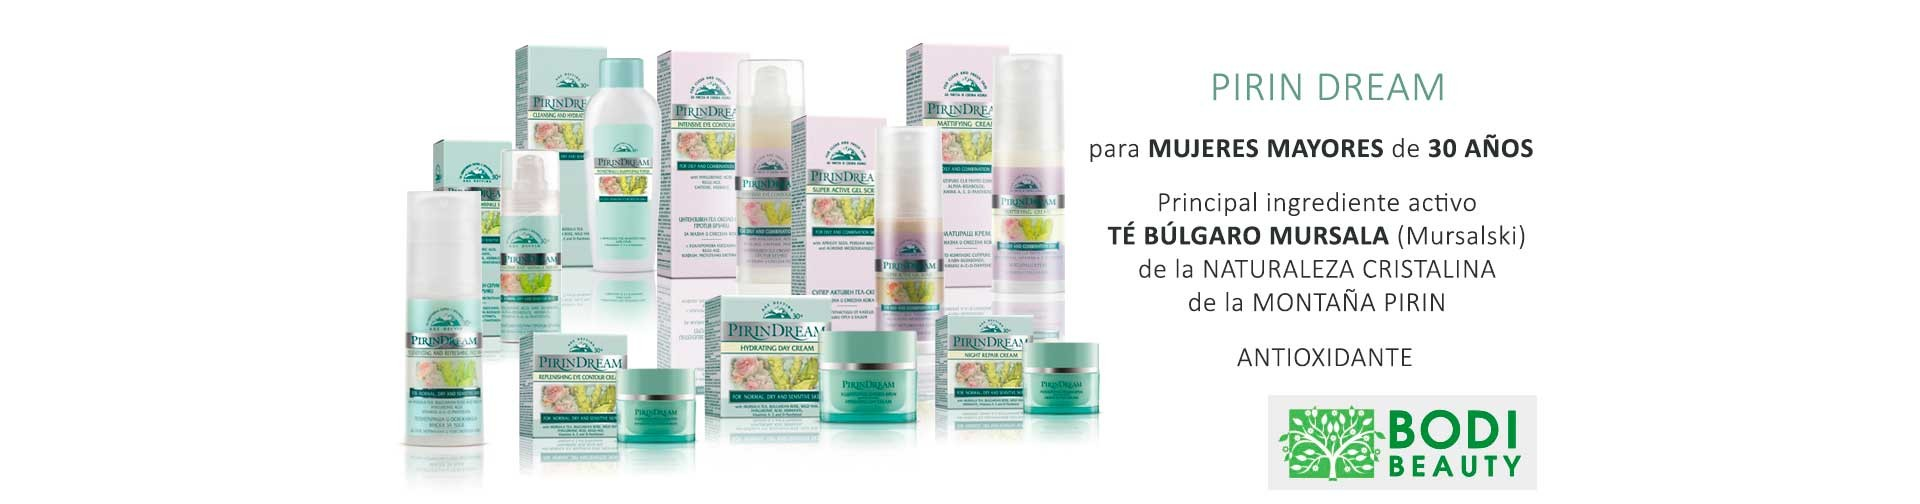 BODI BEAUTY PIRIN DREAM